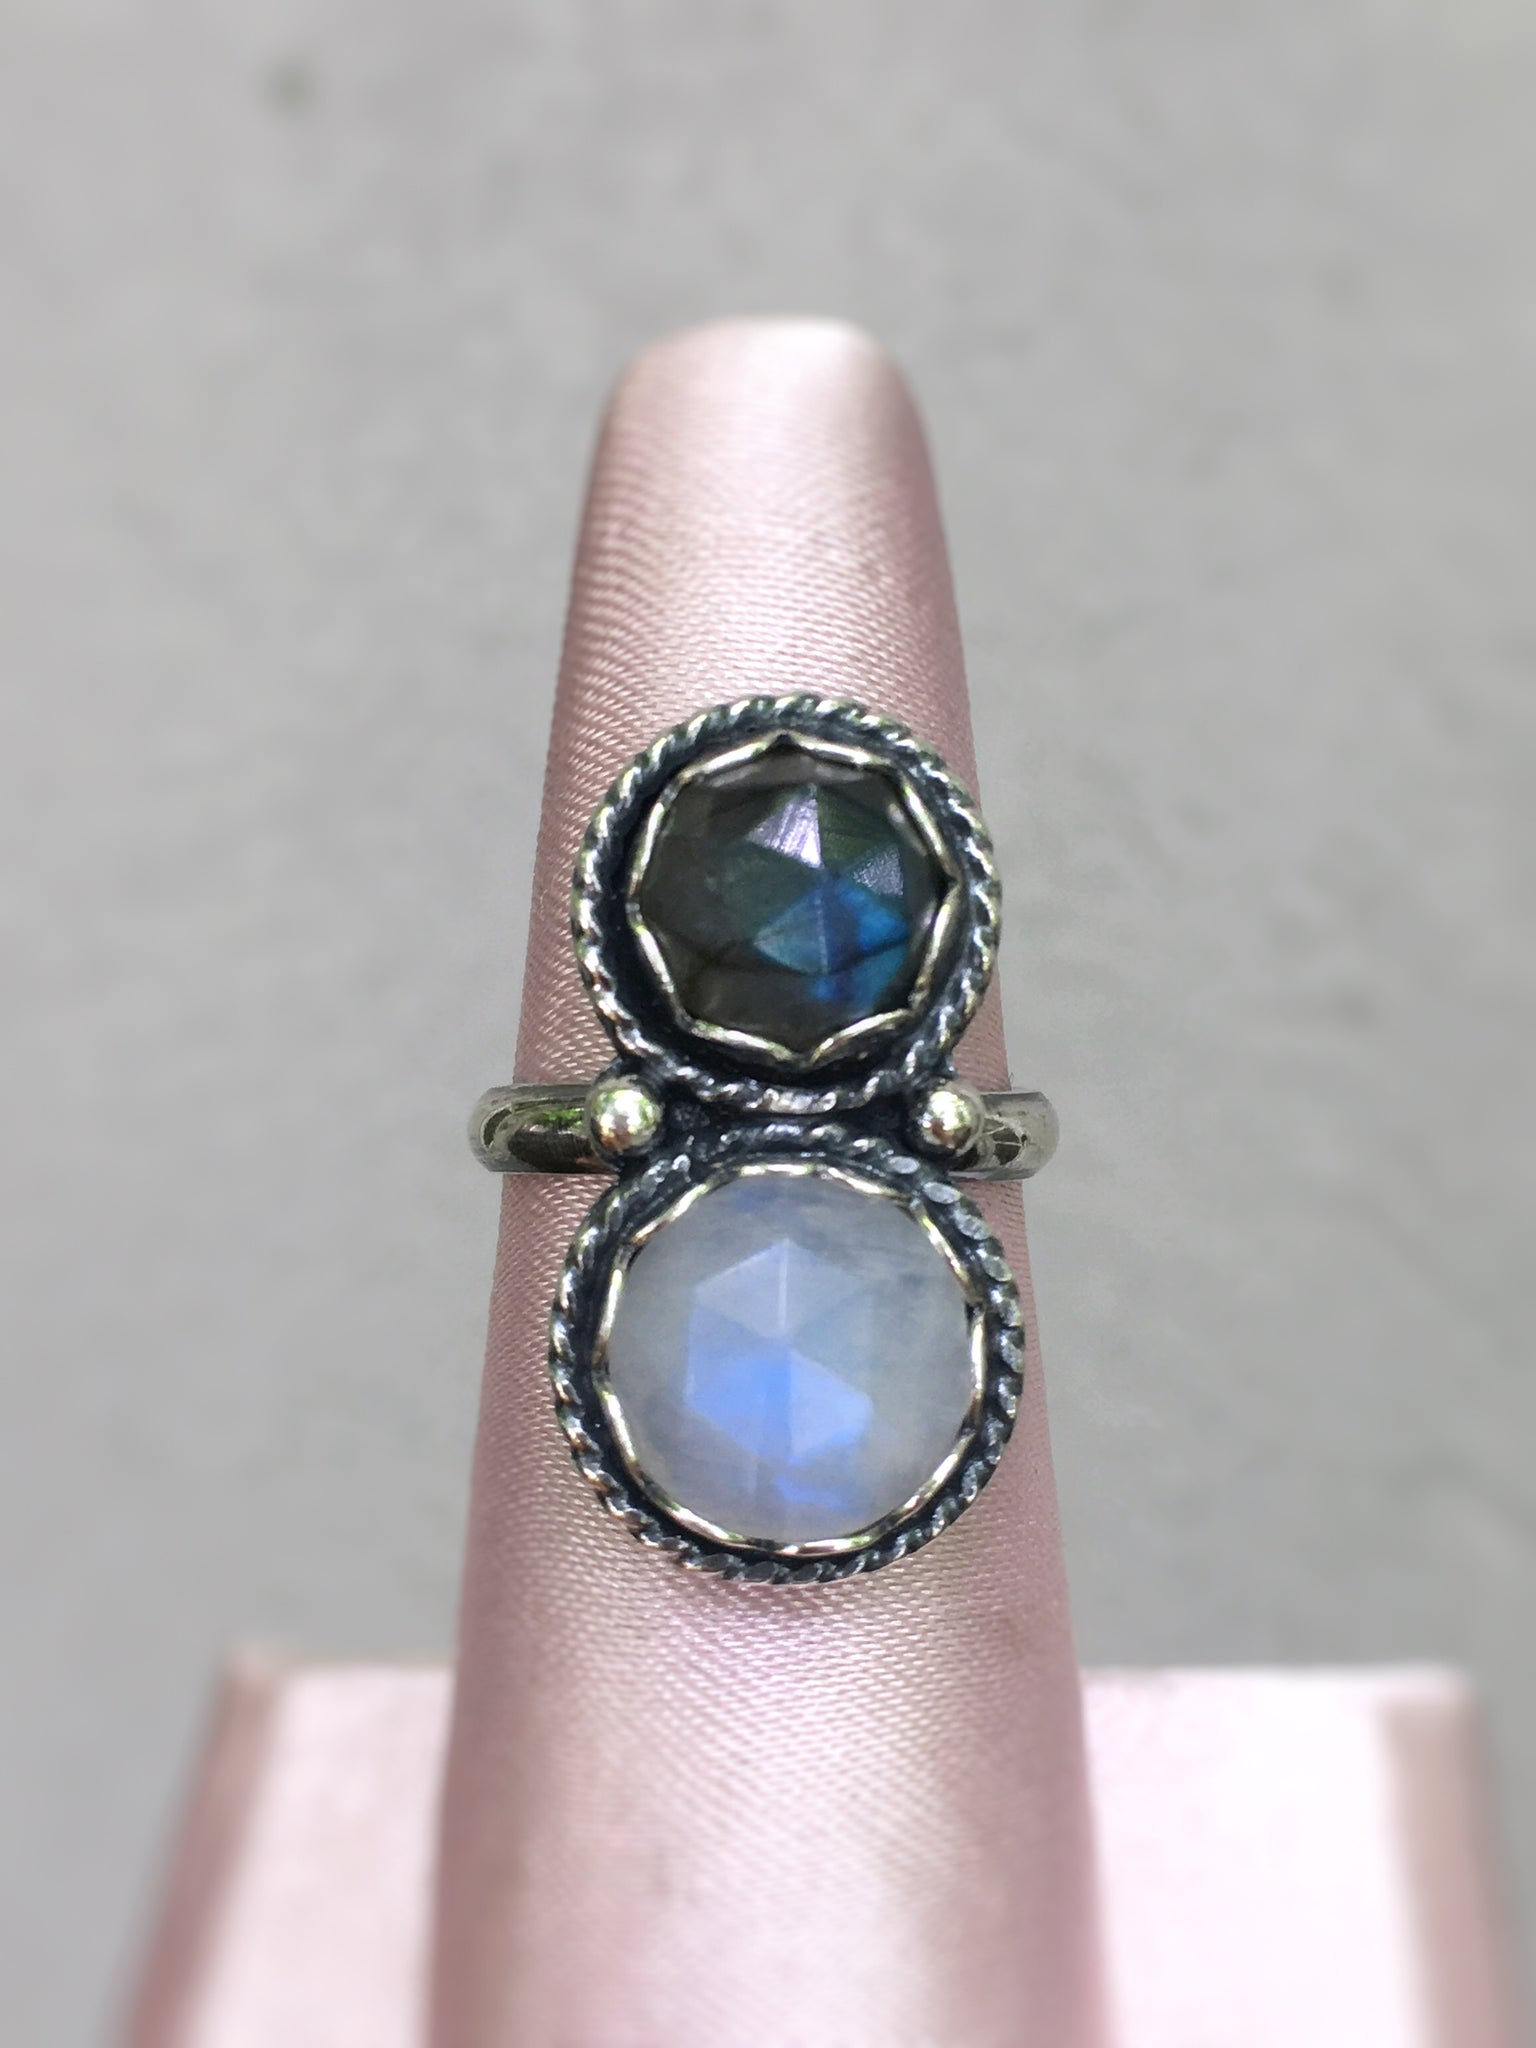 Labradorite and Moonstone Ring - size 6.25